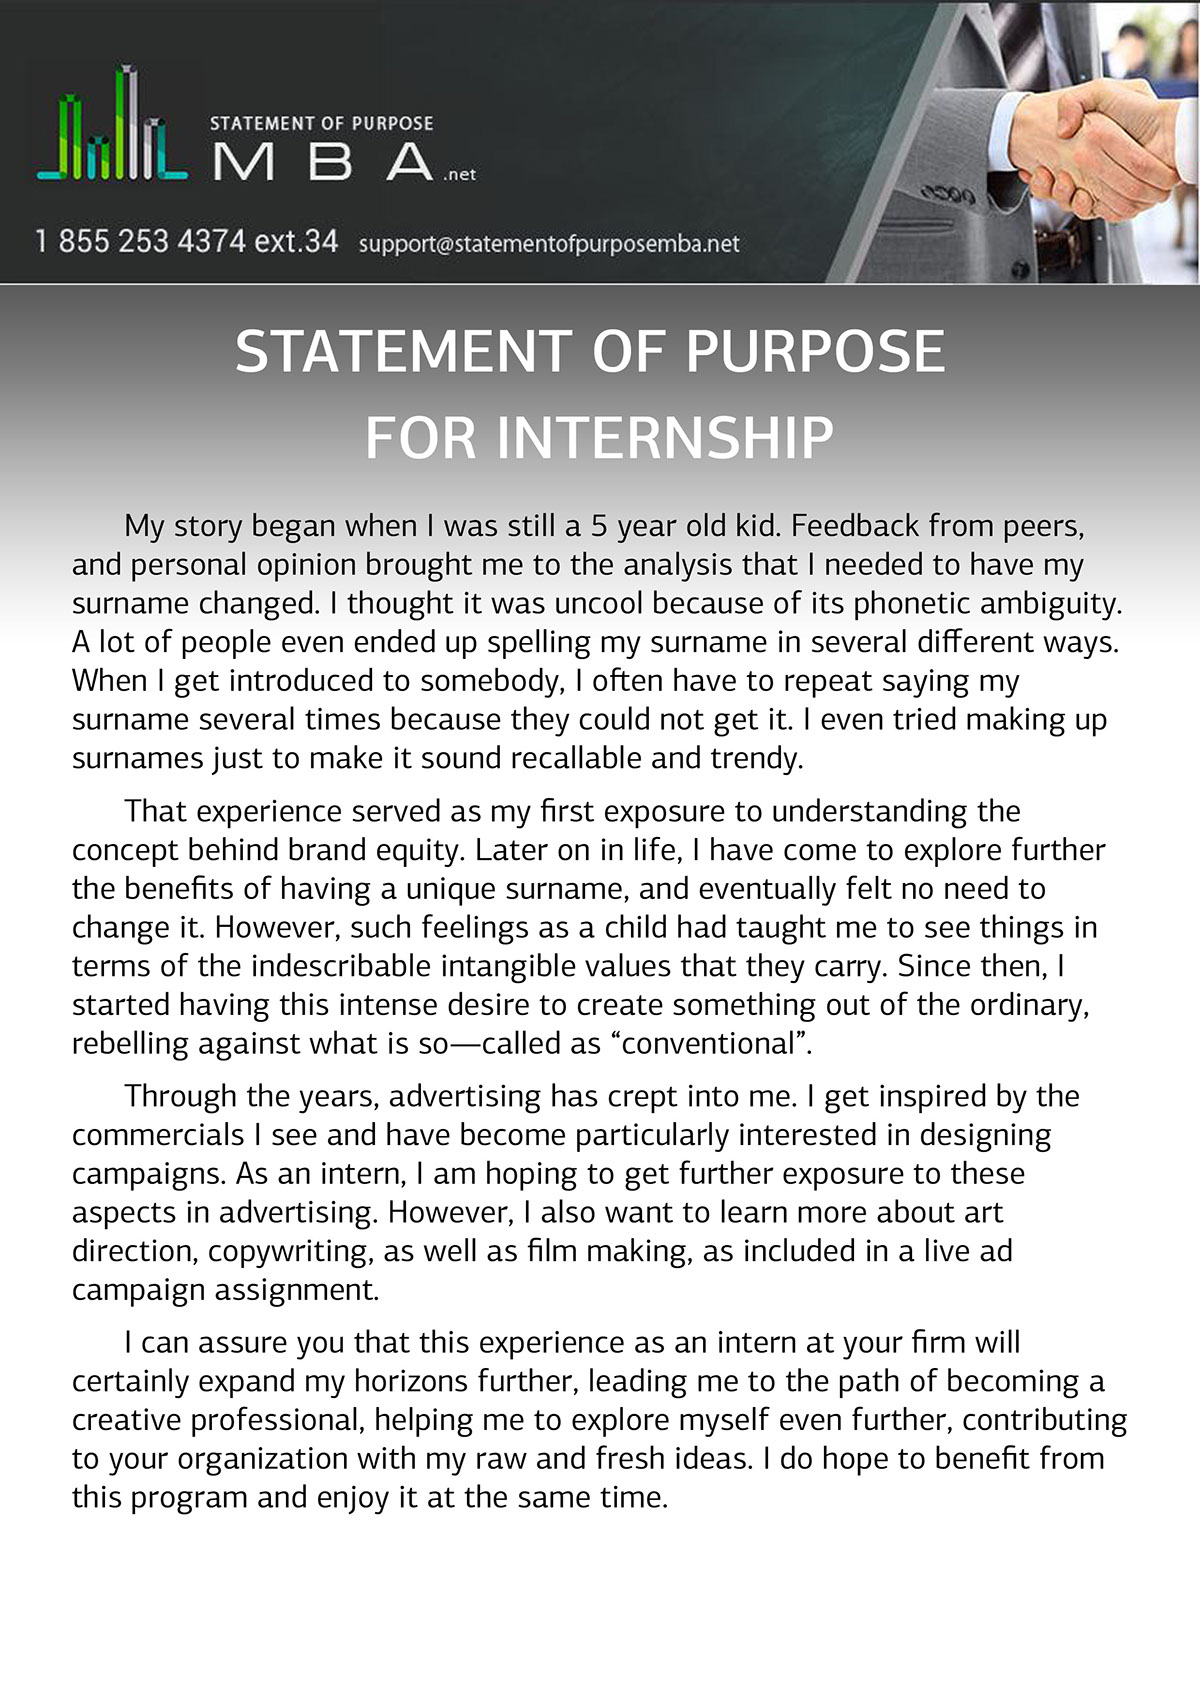 statement of purpose for internship sample on behance we are professional internship writer and writing a statement of purpose for internship is our best service you can check our sample at